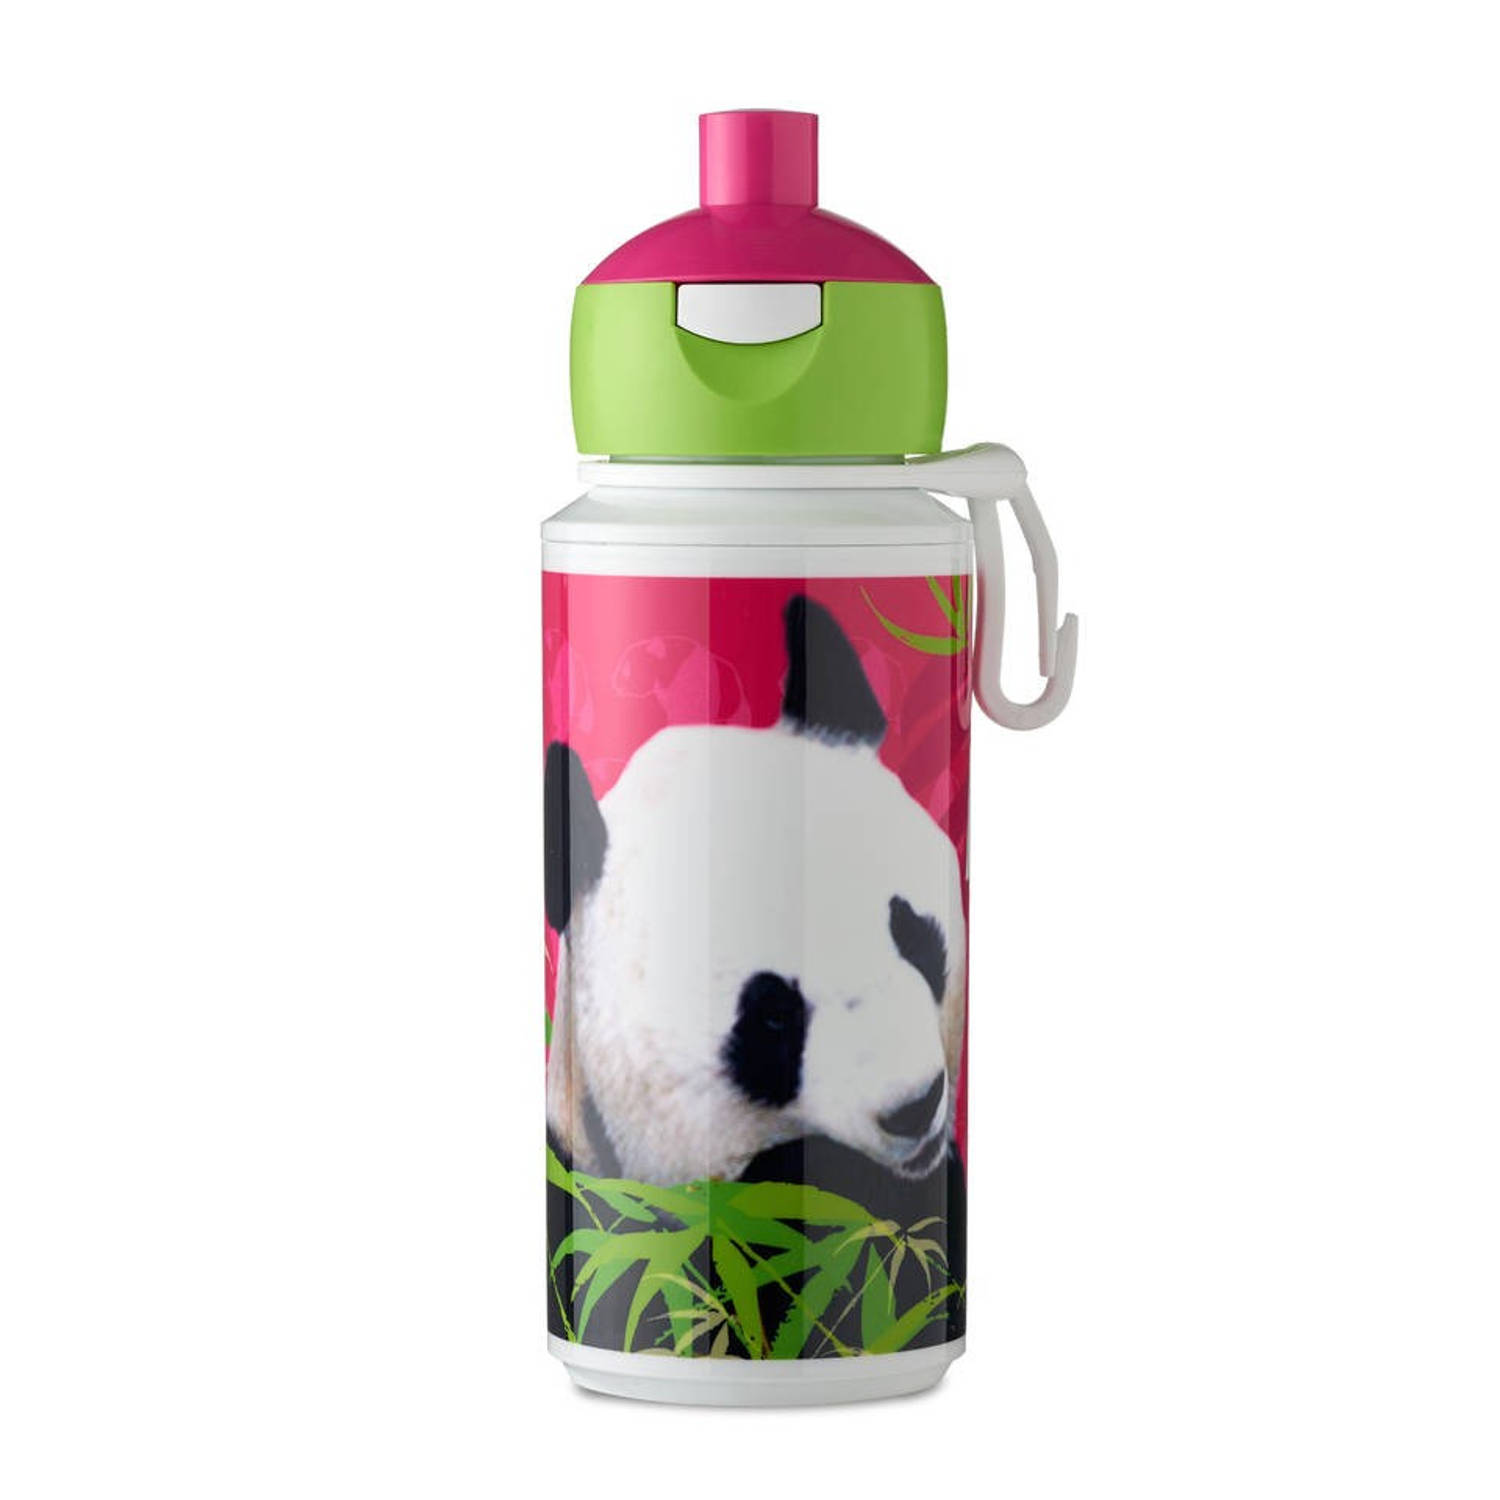 Mepal Animal Planet panda pop-up schoolbeker